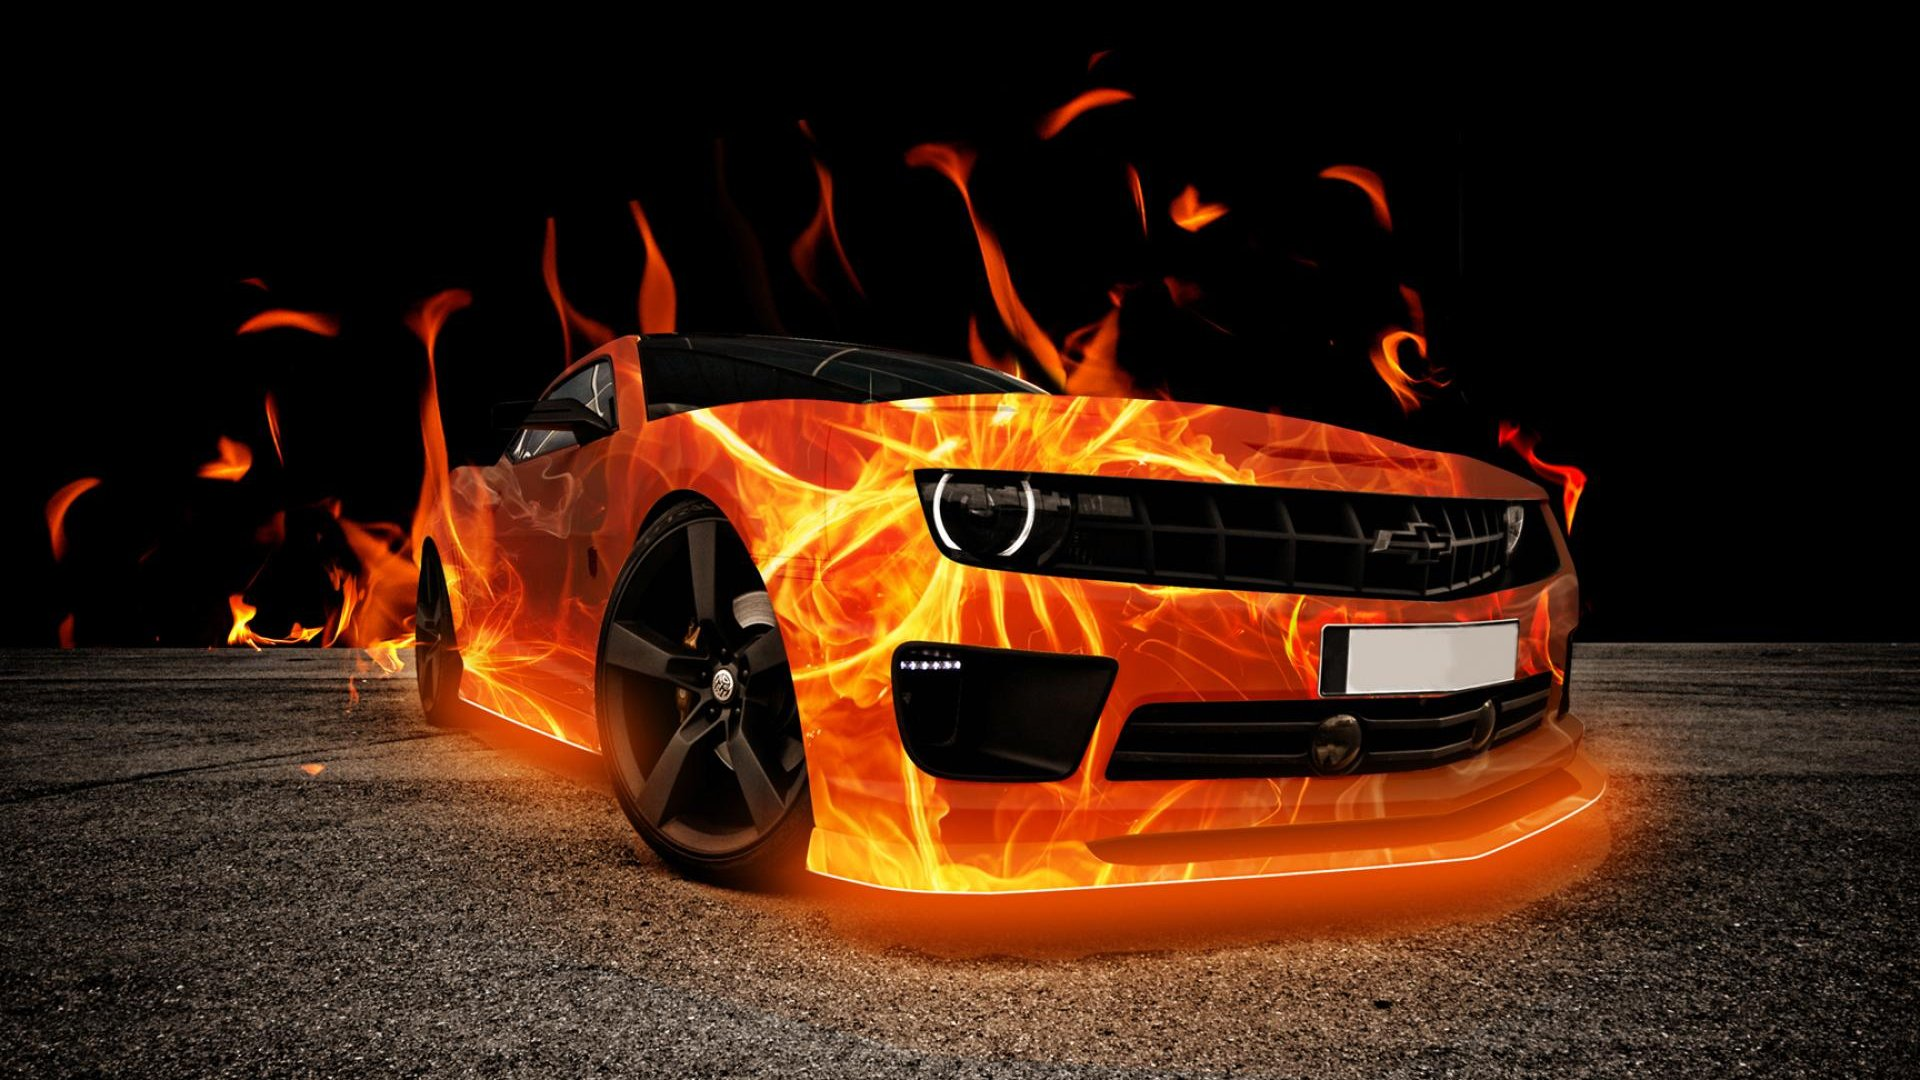 3d wallpapers cars #7